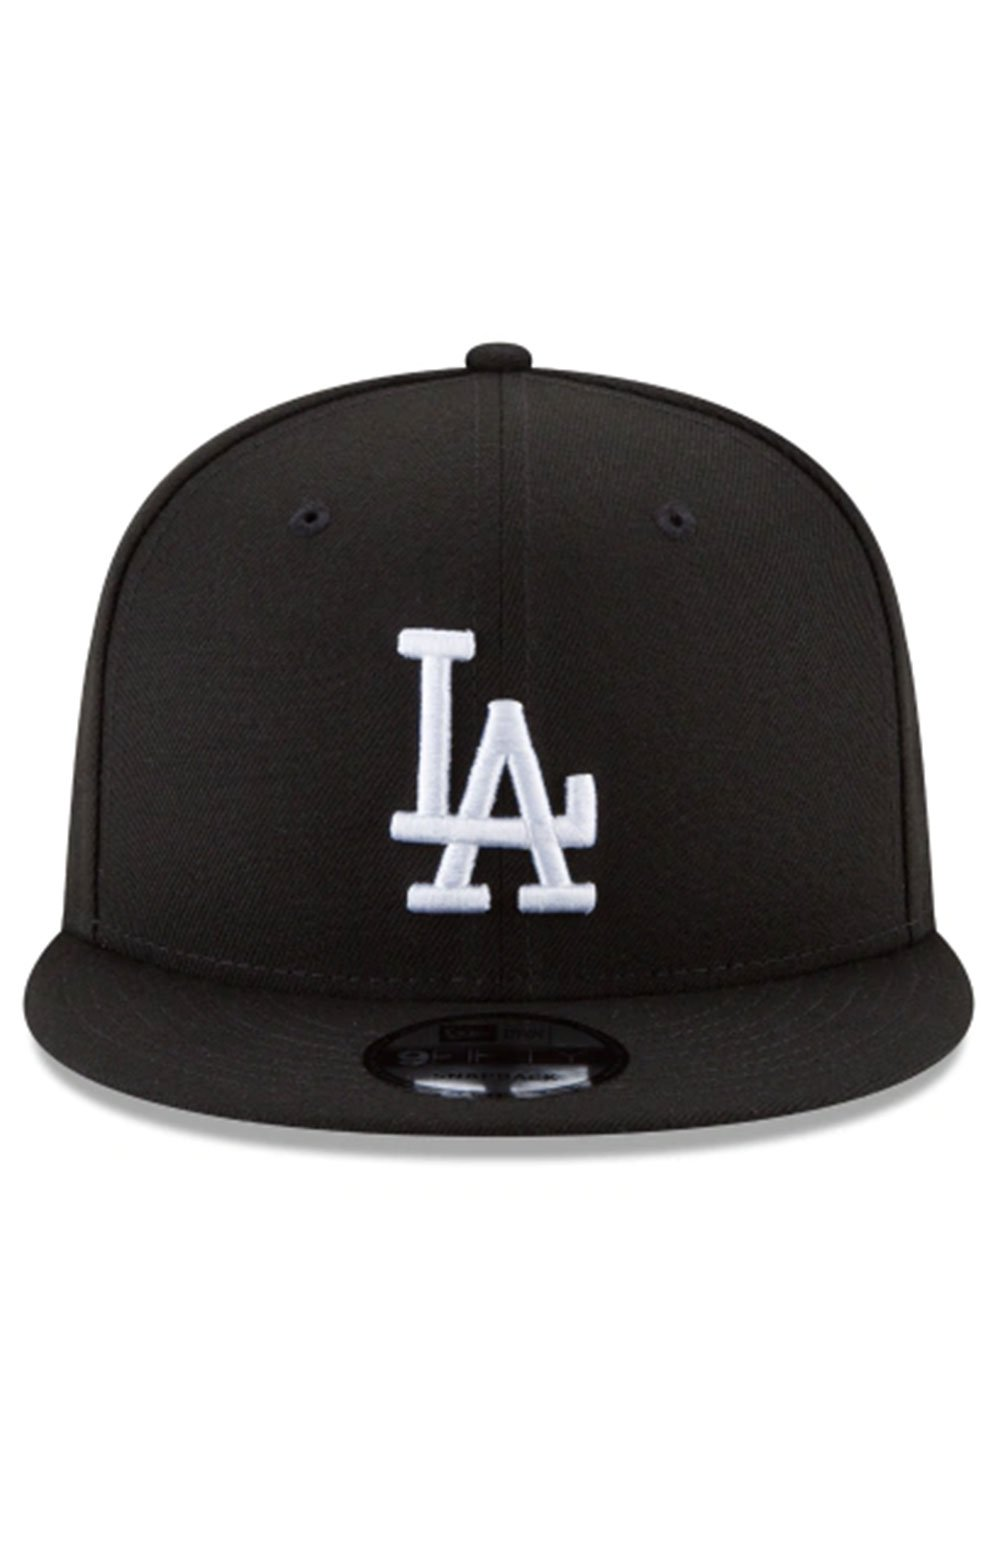 Los Angeles Dodgers Basic 9Fifty Snap-Back Hat - Black/White 5